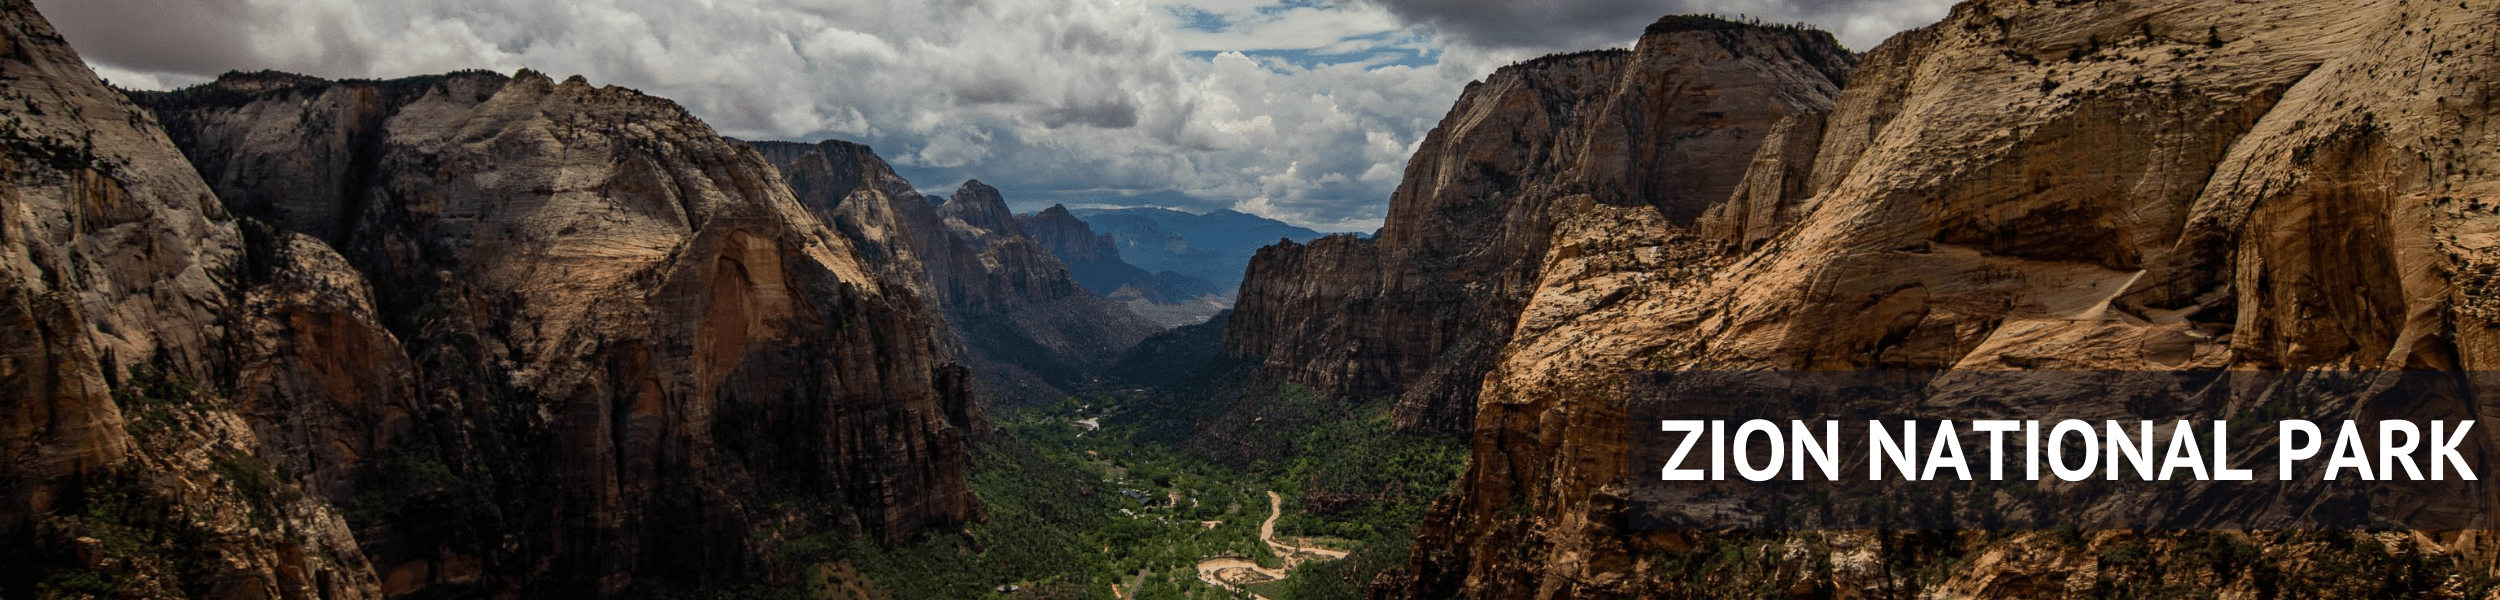 Zion National Park Header